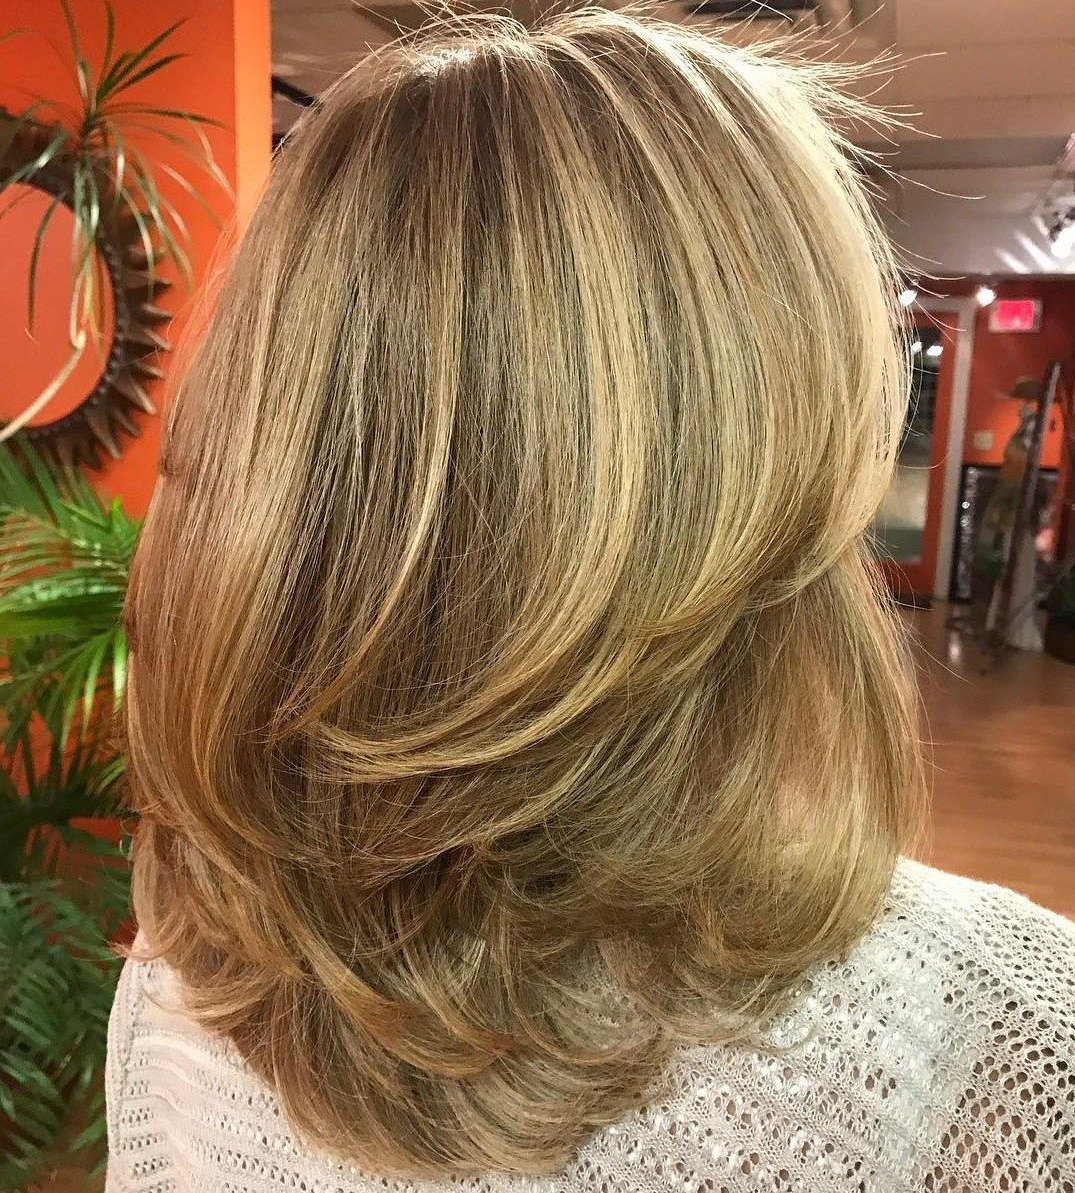 Most Current Swoopy Layers Hairstyles For Mid Length Hair With Regard To 70 Brightest Medium Layered Haircuts To Light You Up (View 1 of 20)